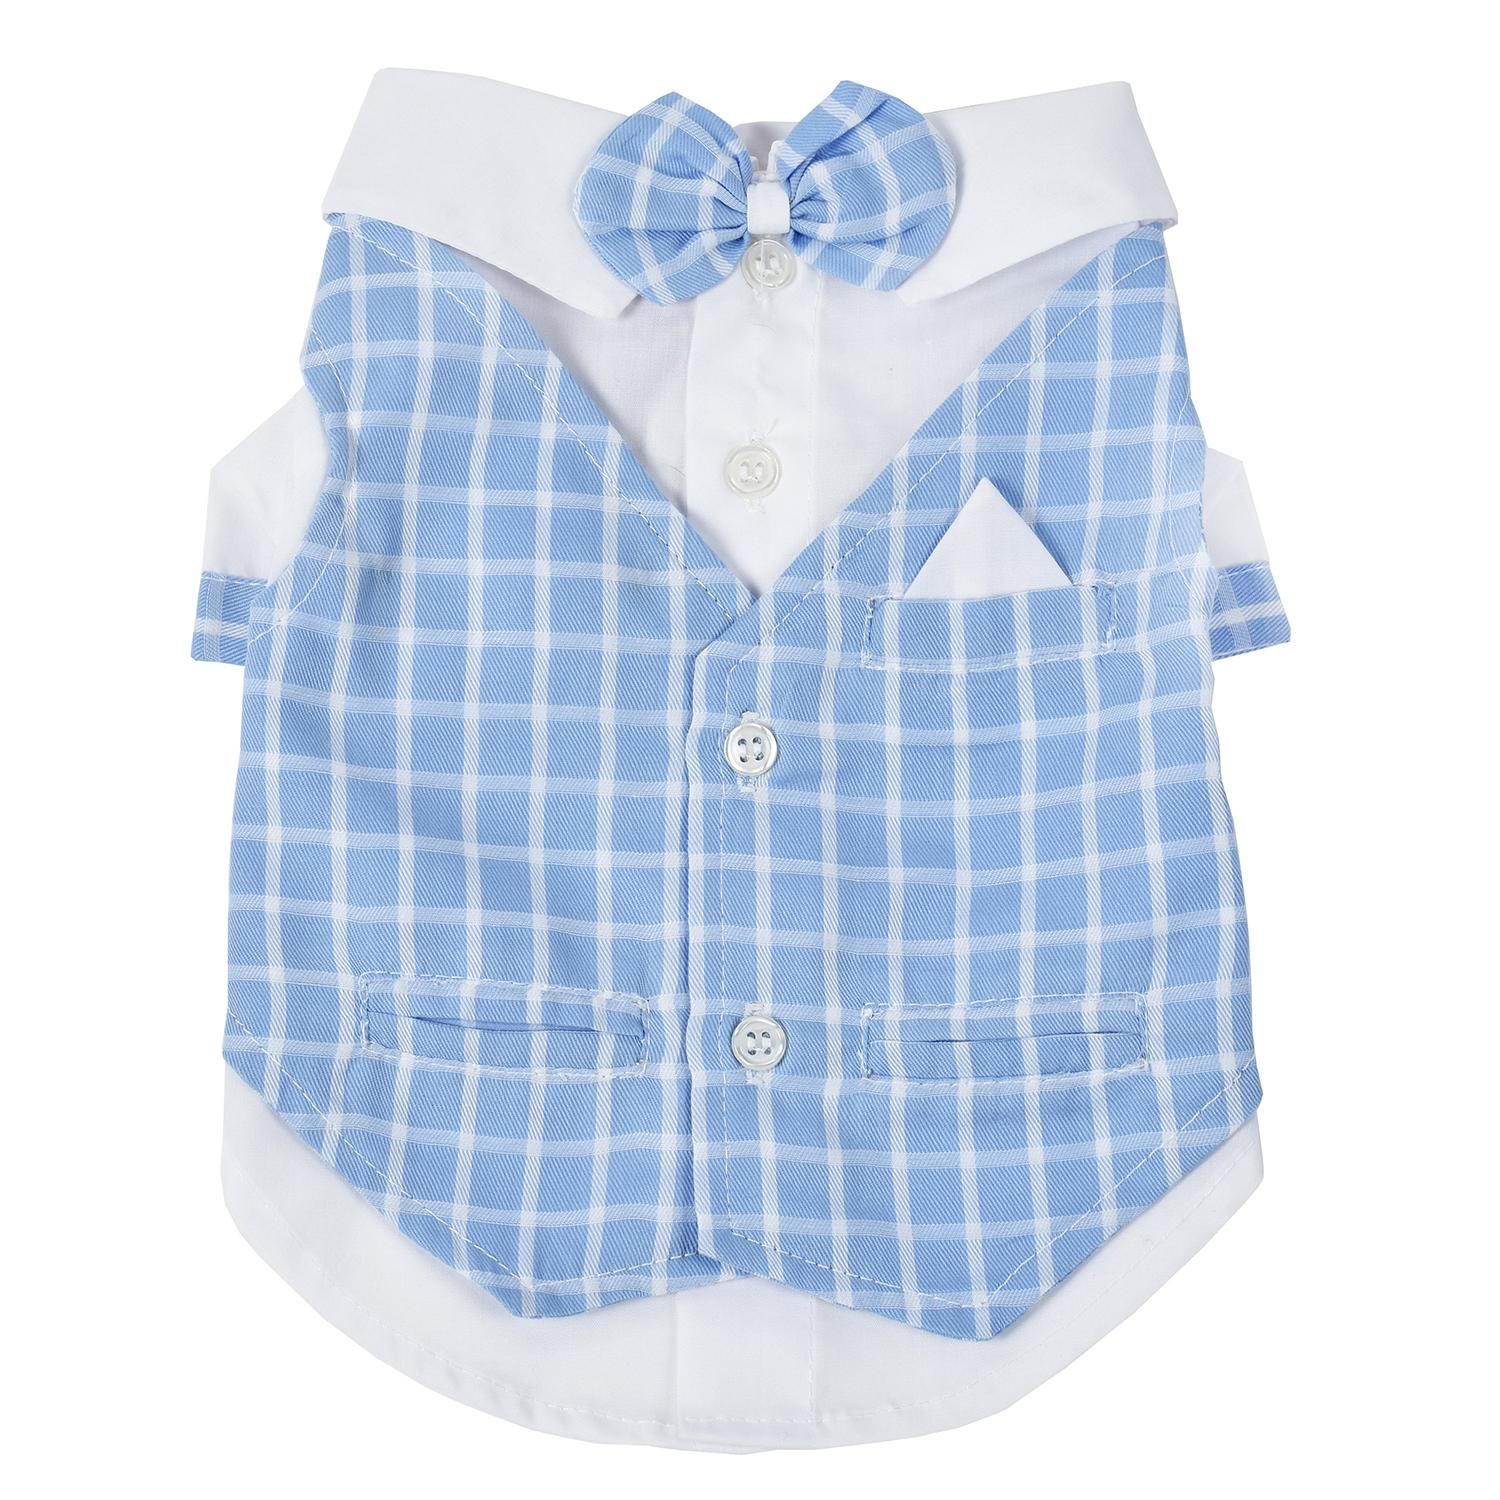 License to Charm Dog Tuxedo By Oscar Newman - Baby Blue Plaid